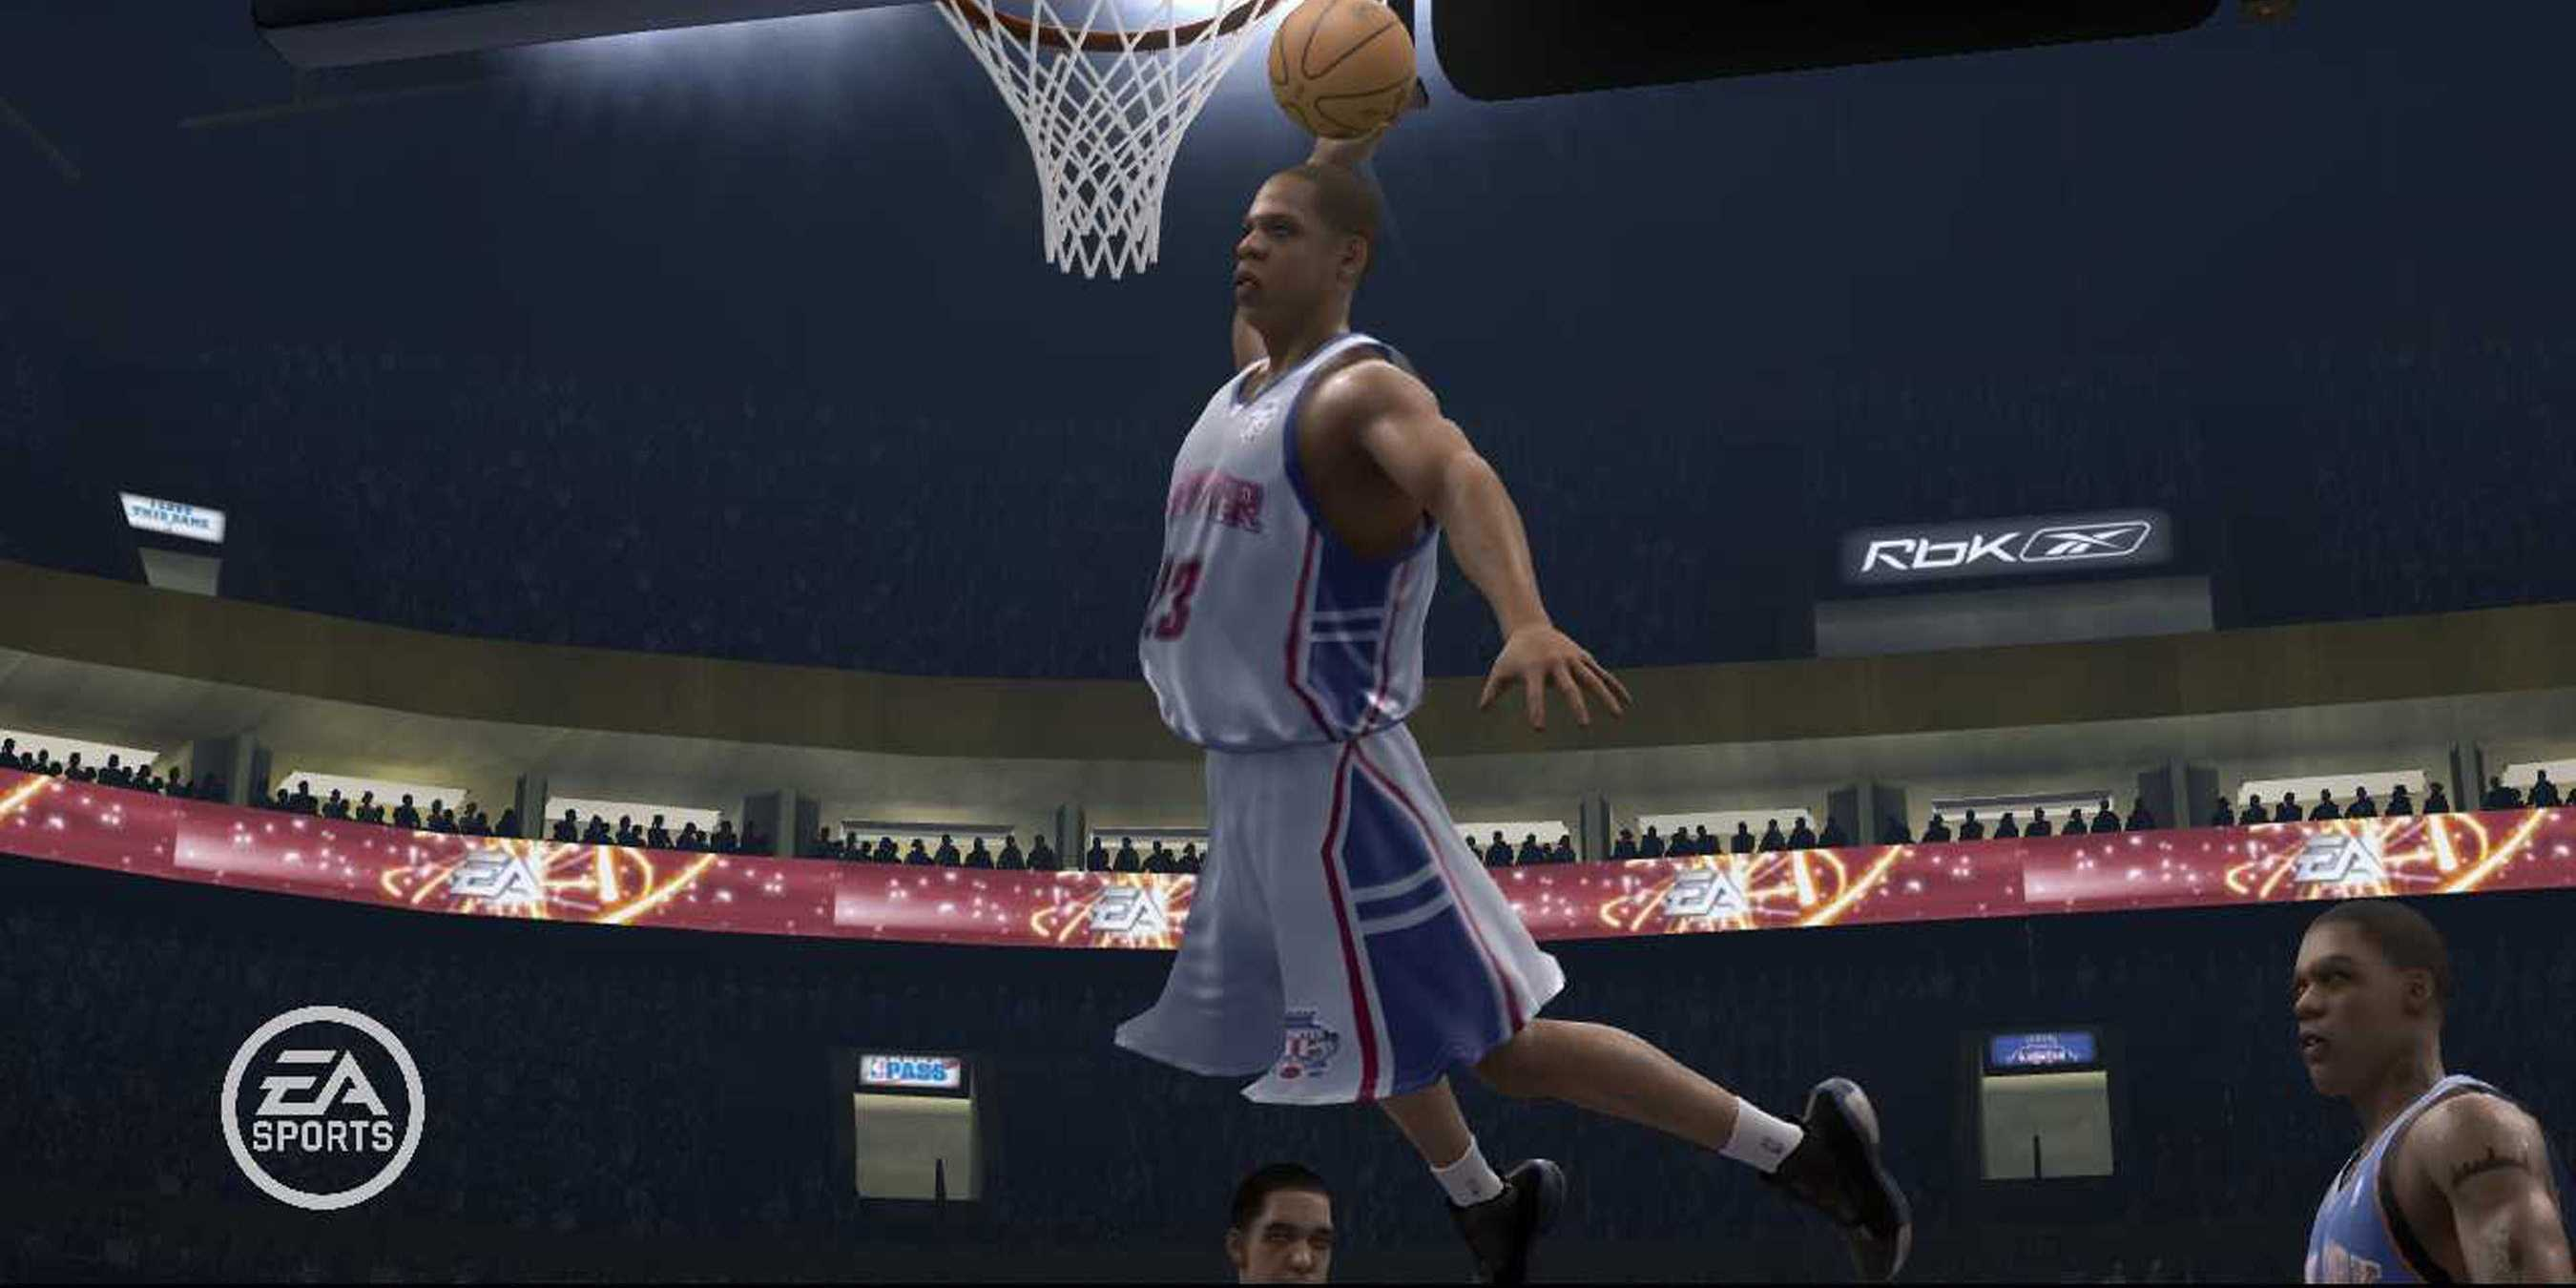 Jay Z in NBA Live 07.